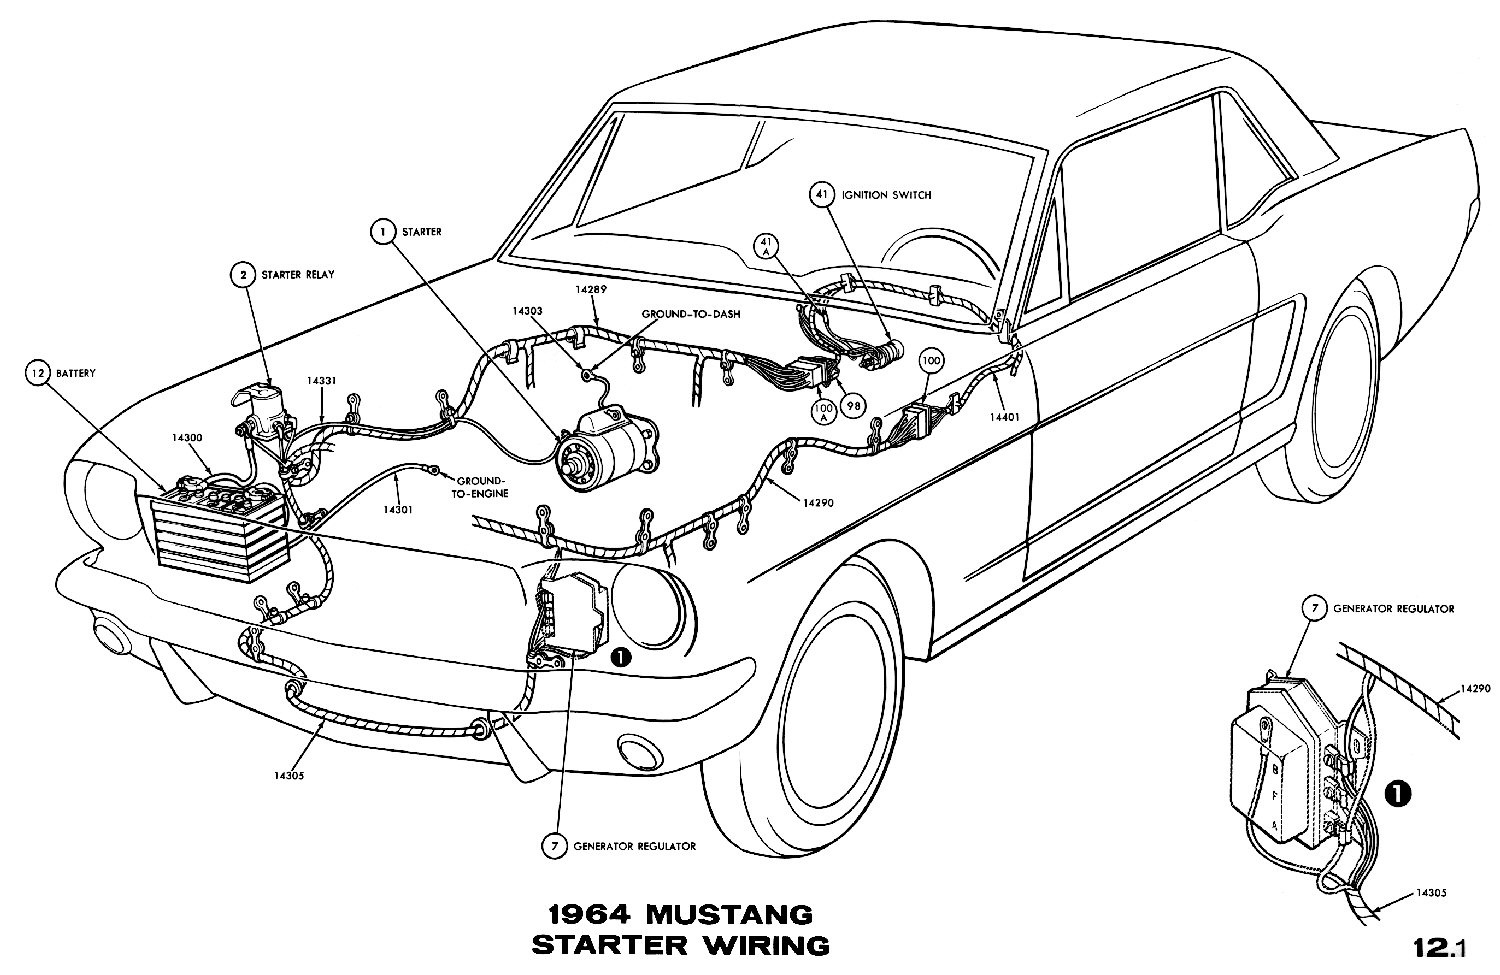 1964d 1964 mustang wiring diagrams average joe restoration 1969 mustang alternator wiring diagram at eliteediting.co